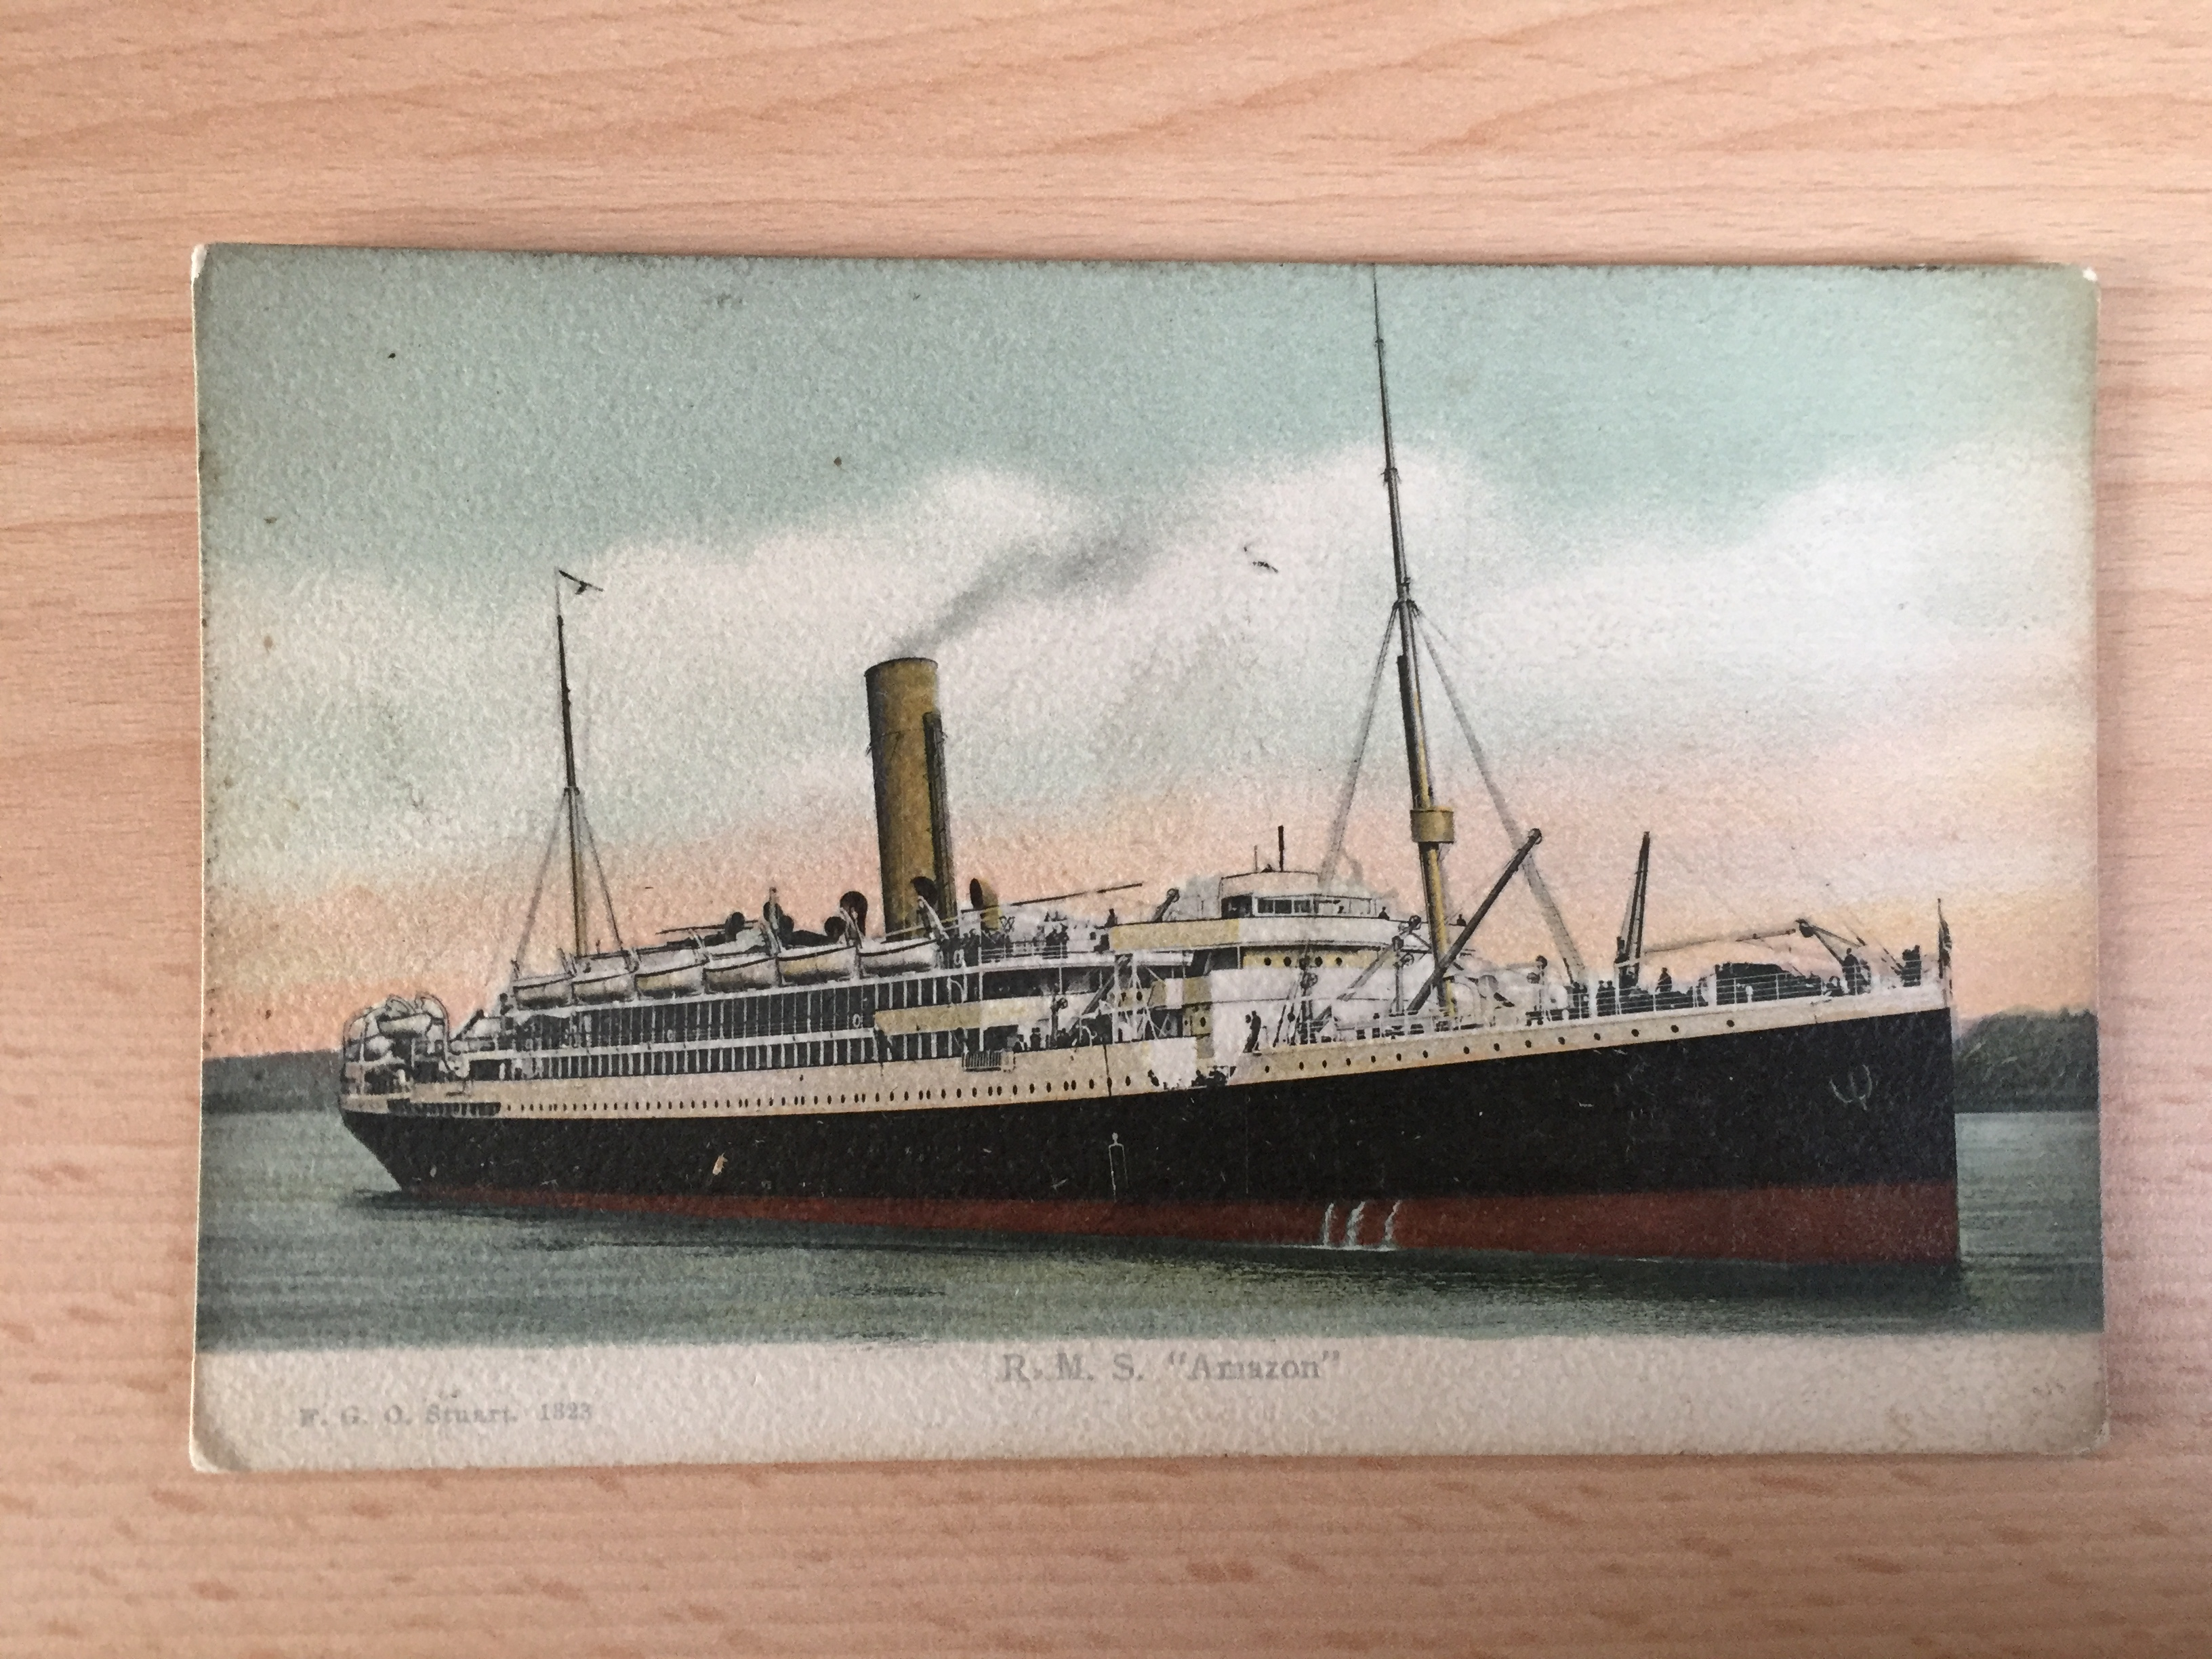 EARLY COLOUR POSTCARD FROM THE ROYAL MAIL LINE VESSEL THE RMS AMAZON WHICH IS UNUSED